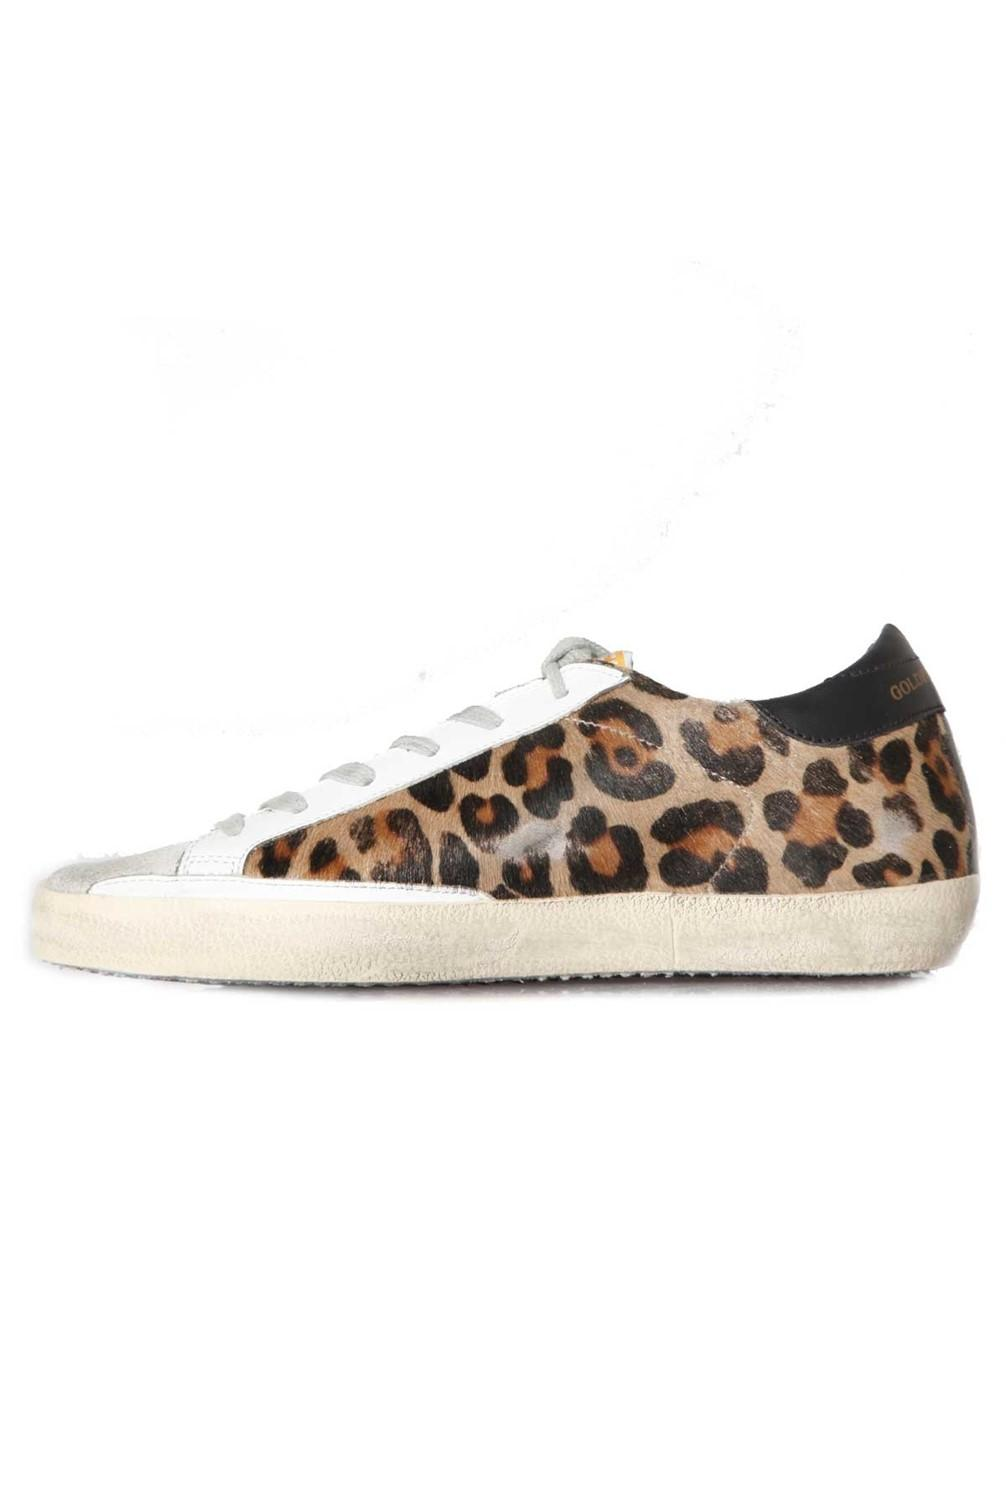 Snow Leopard Shoes Nike